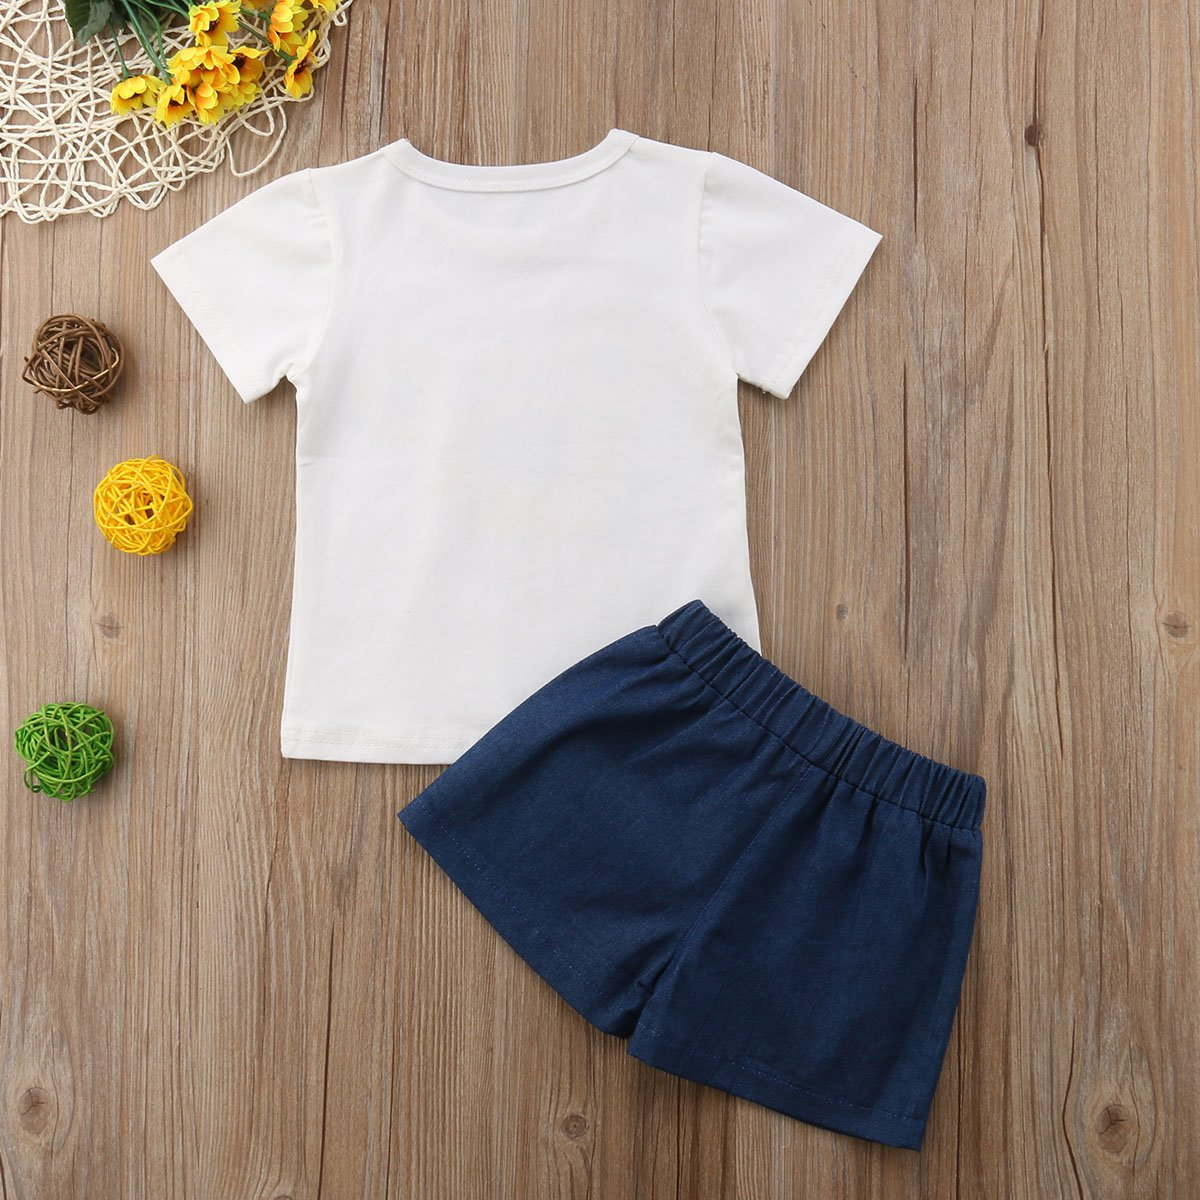 Little Girls 2-Piece Set Sunflower T-Shirt and Pants Children Clothing Summer